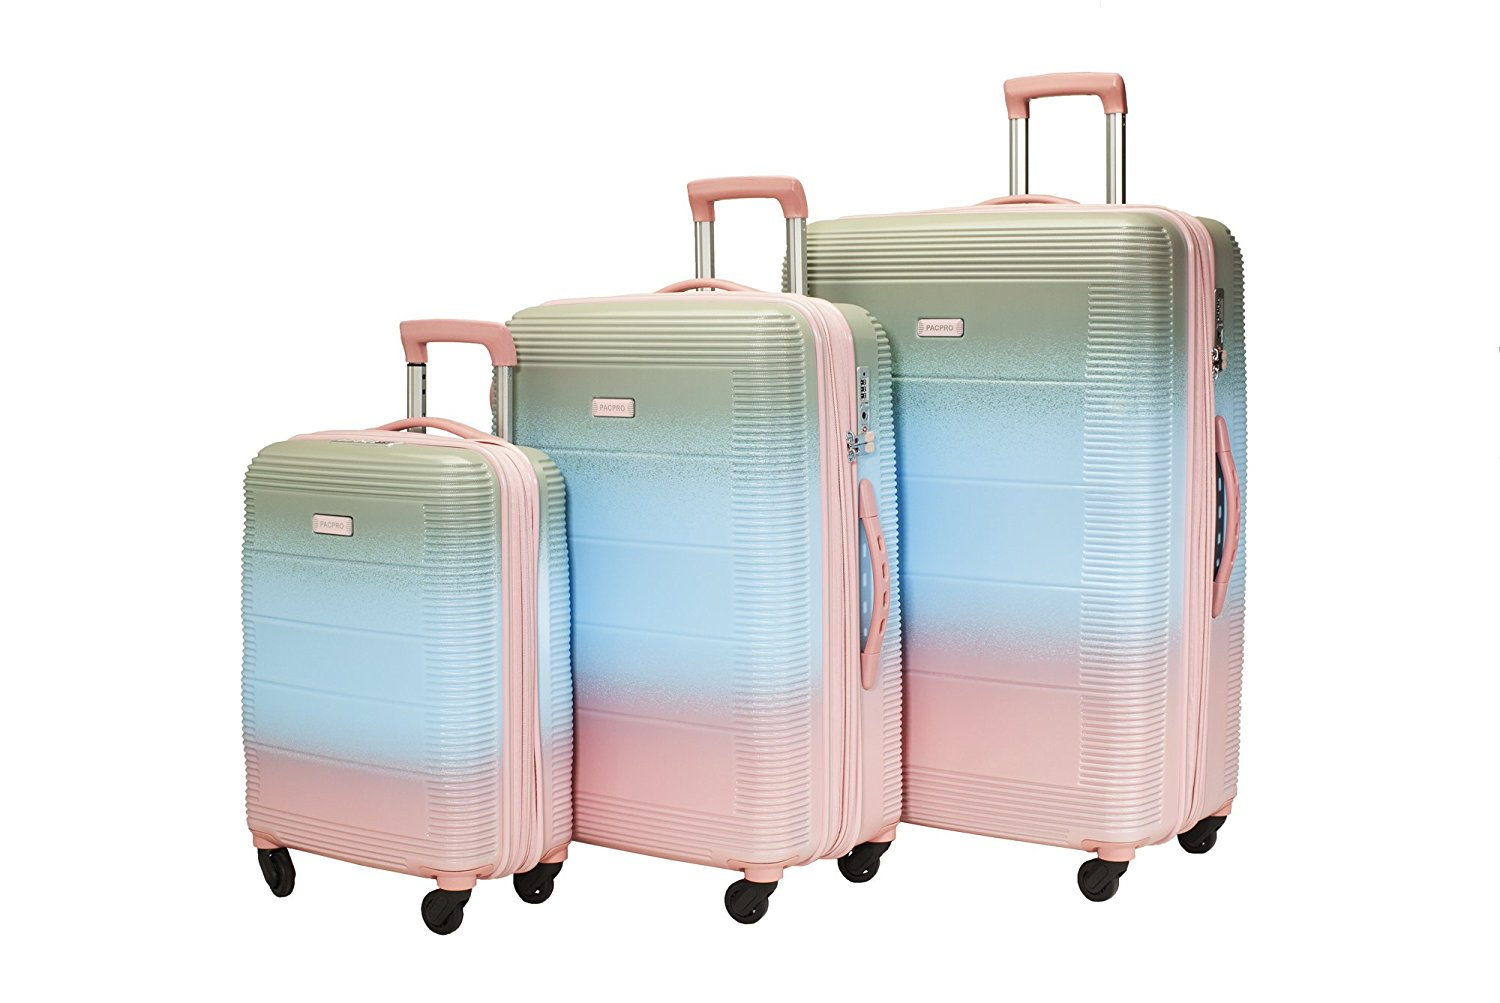 6ea4d4b0e Get Quotations · Diophy Pacpro Luggage Sets Glossy Suitcase Sets Hardside  Spinner Trolley Expandable (19'',